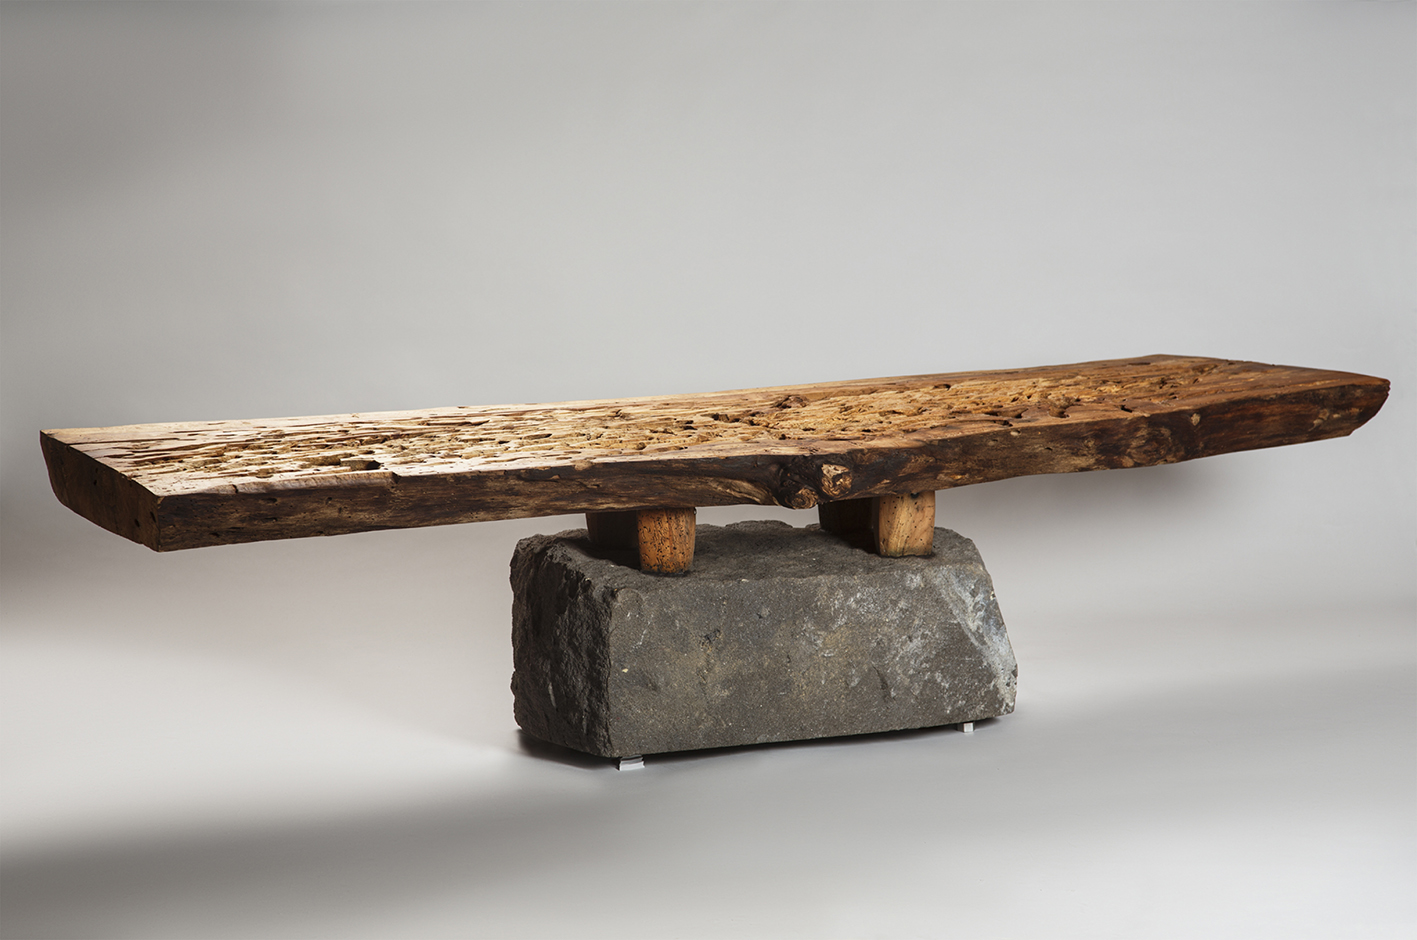 JULIO MARTÍNEZ BARNETCHE - BENCH WITH FEET